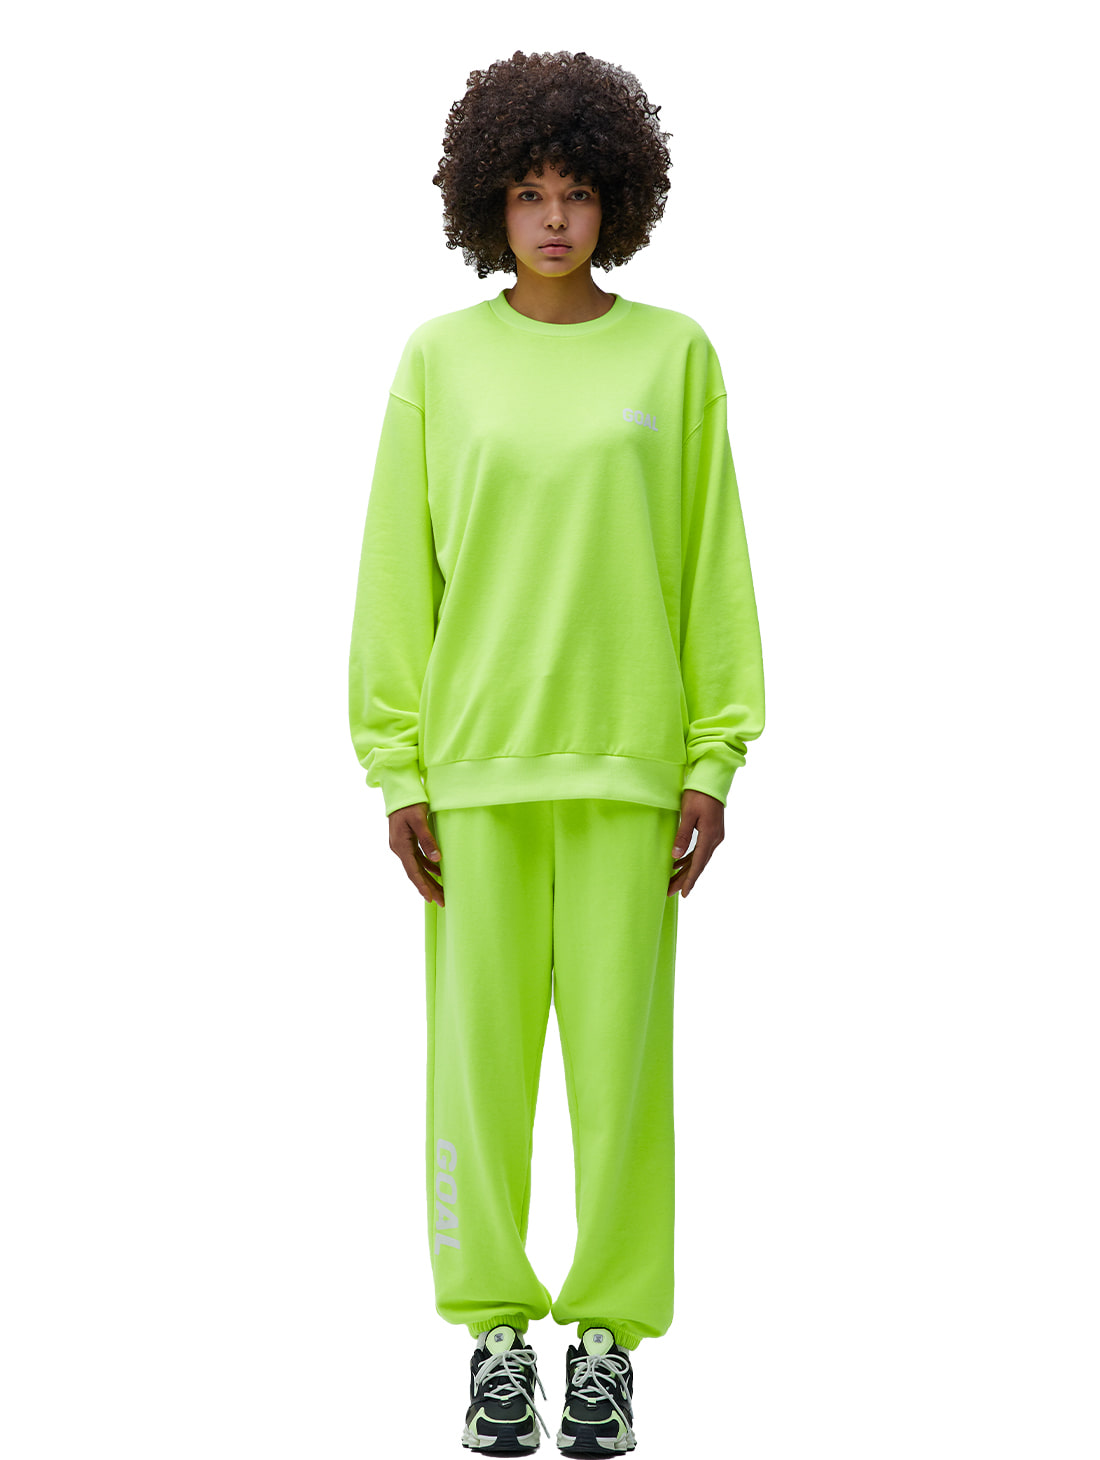 GOALSTUDIO [10% OFF] FLOCKING SWEATSHIRT & PANTS SET - LIME YELLOW